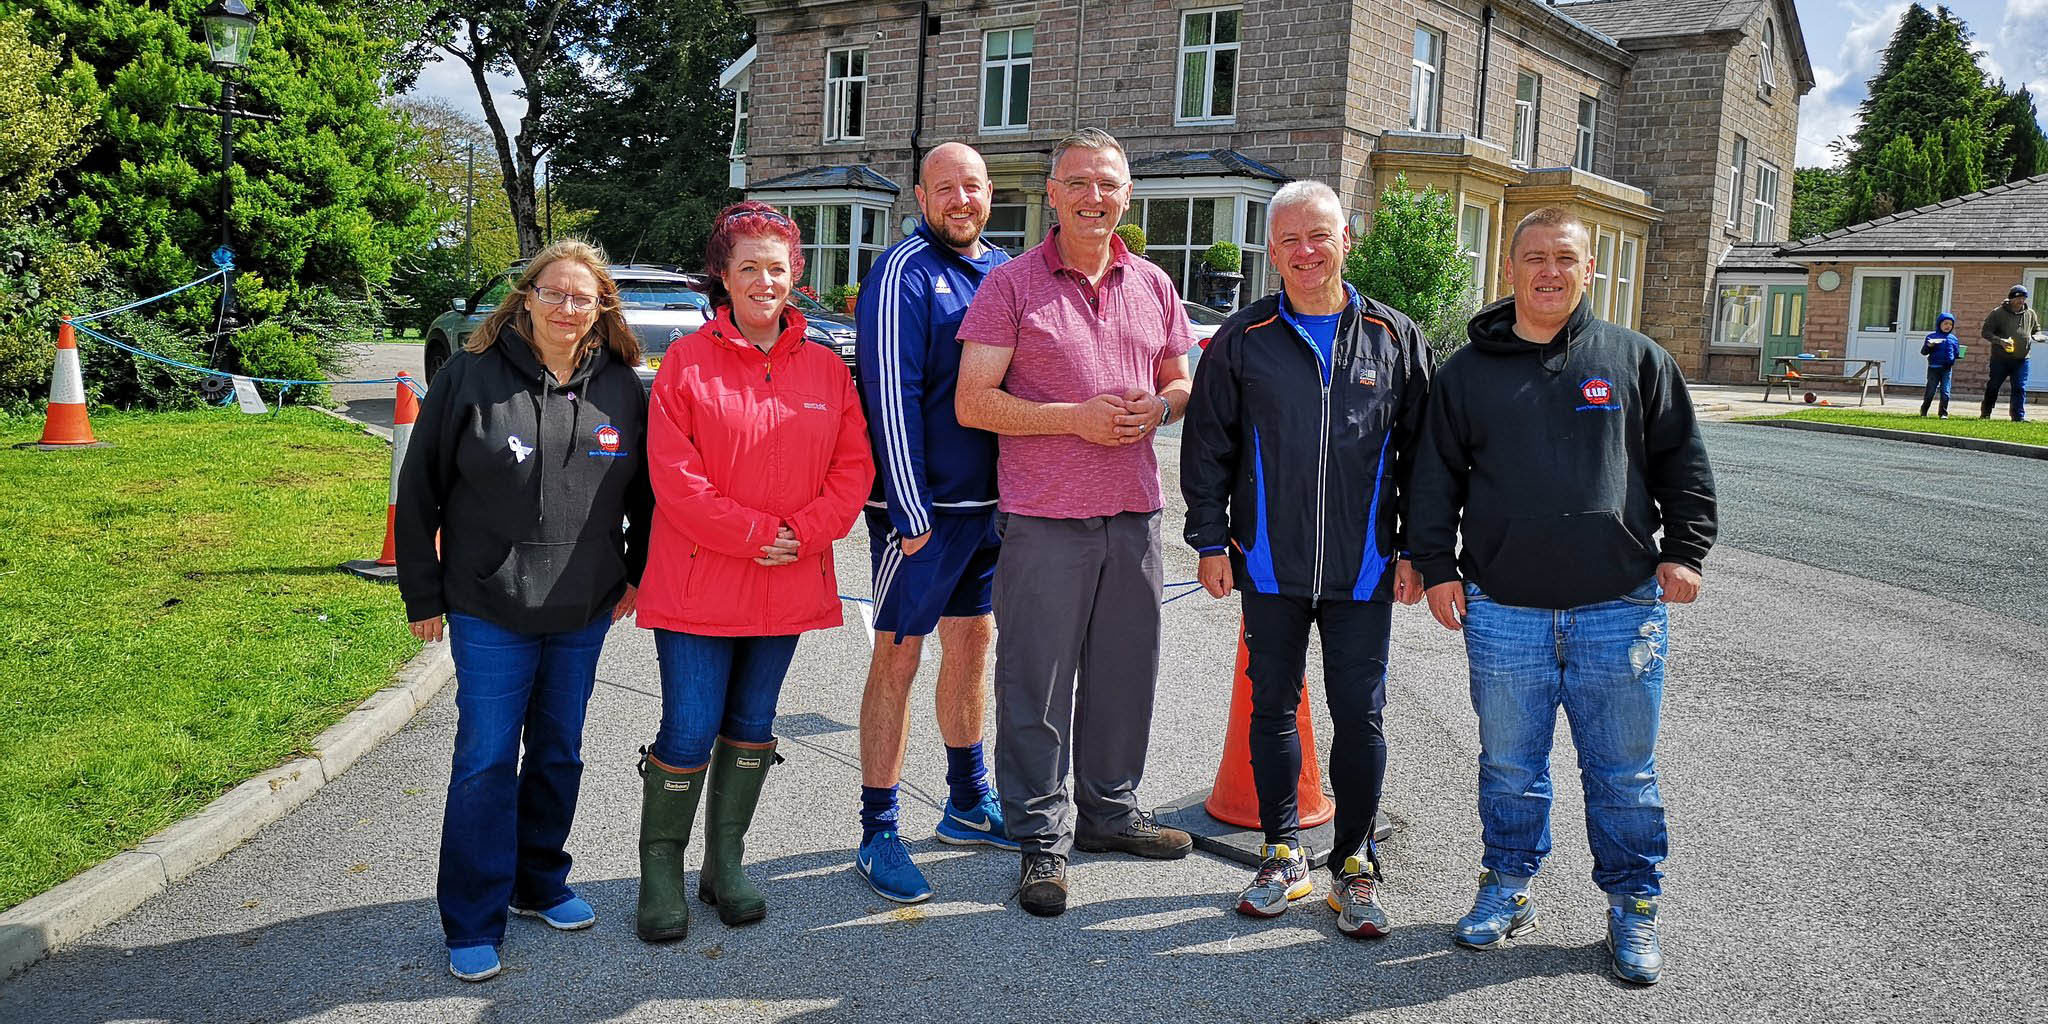 Lancashire recovery celebration: organisers of the LUFStock18 campout pictured at Salus Withnell Hall